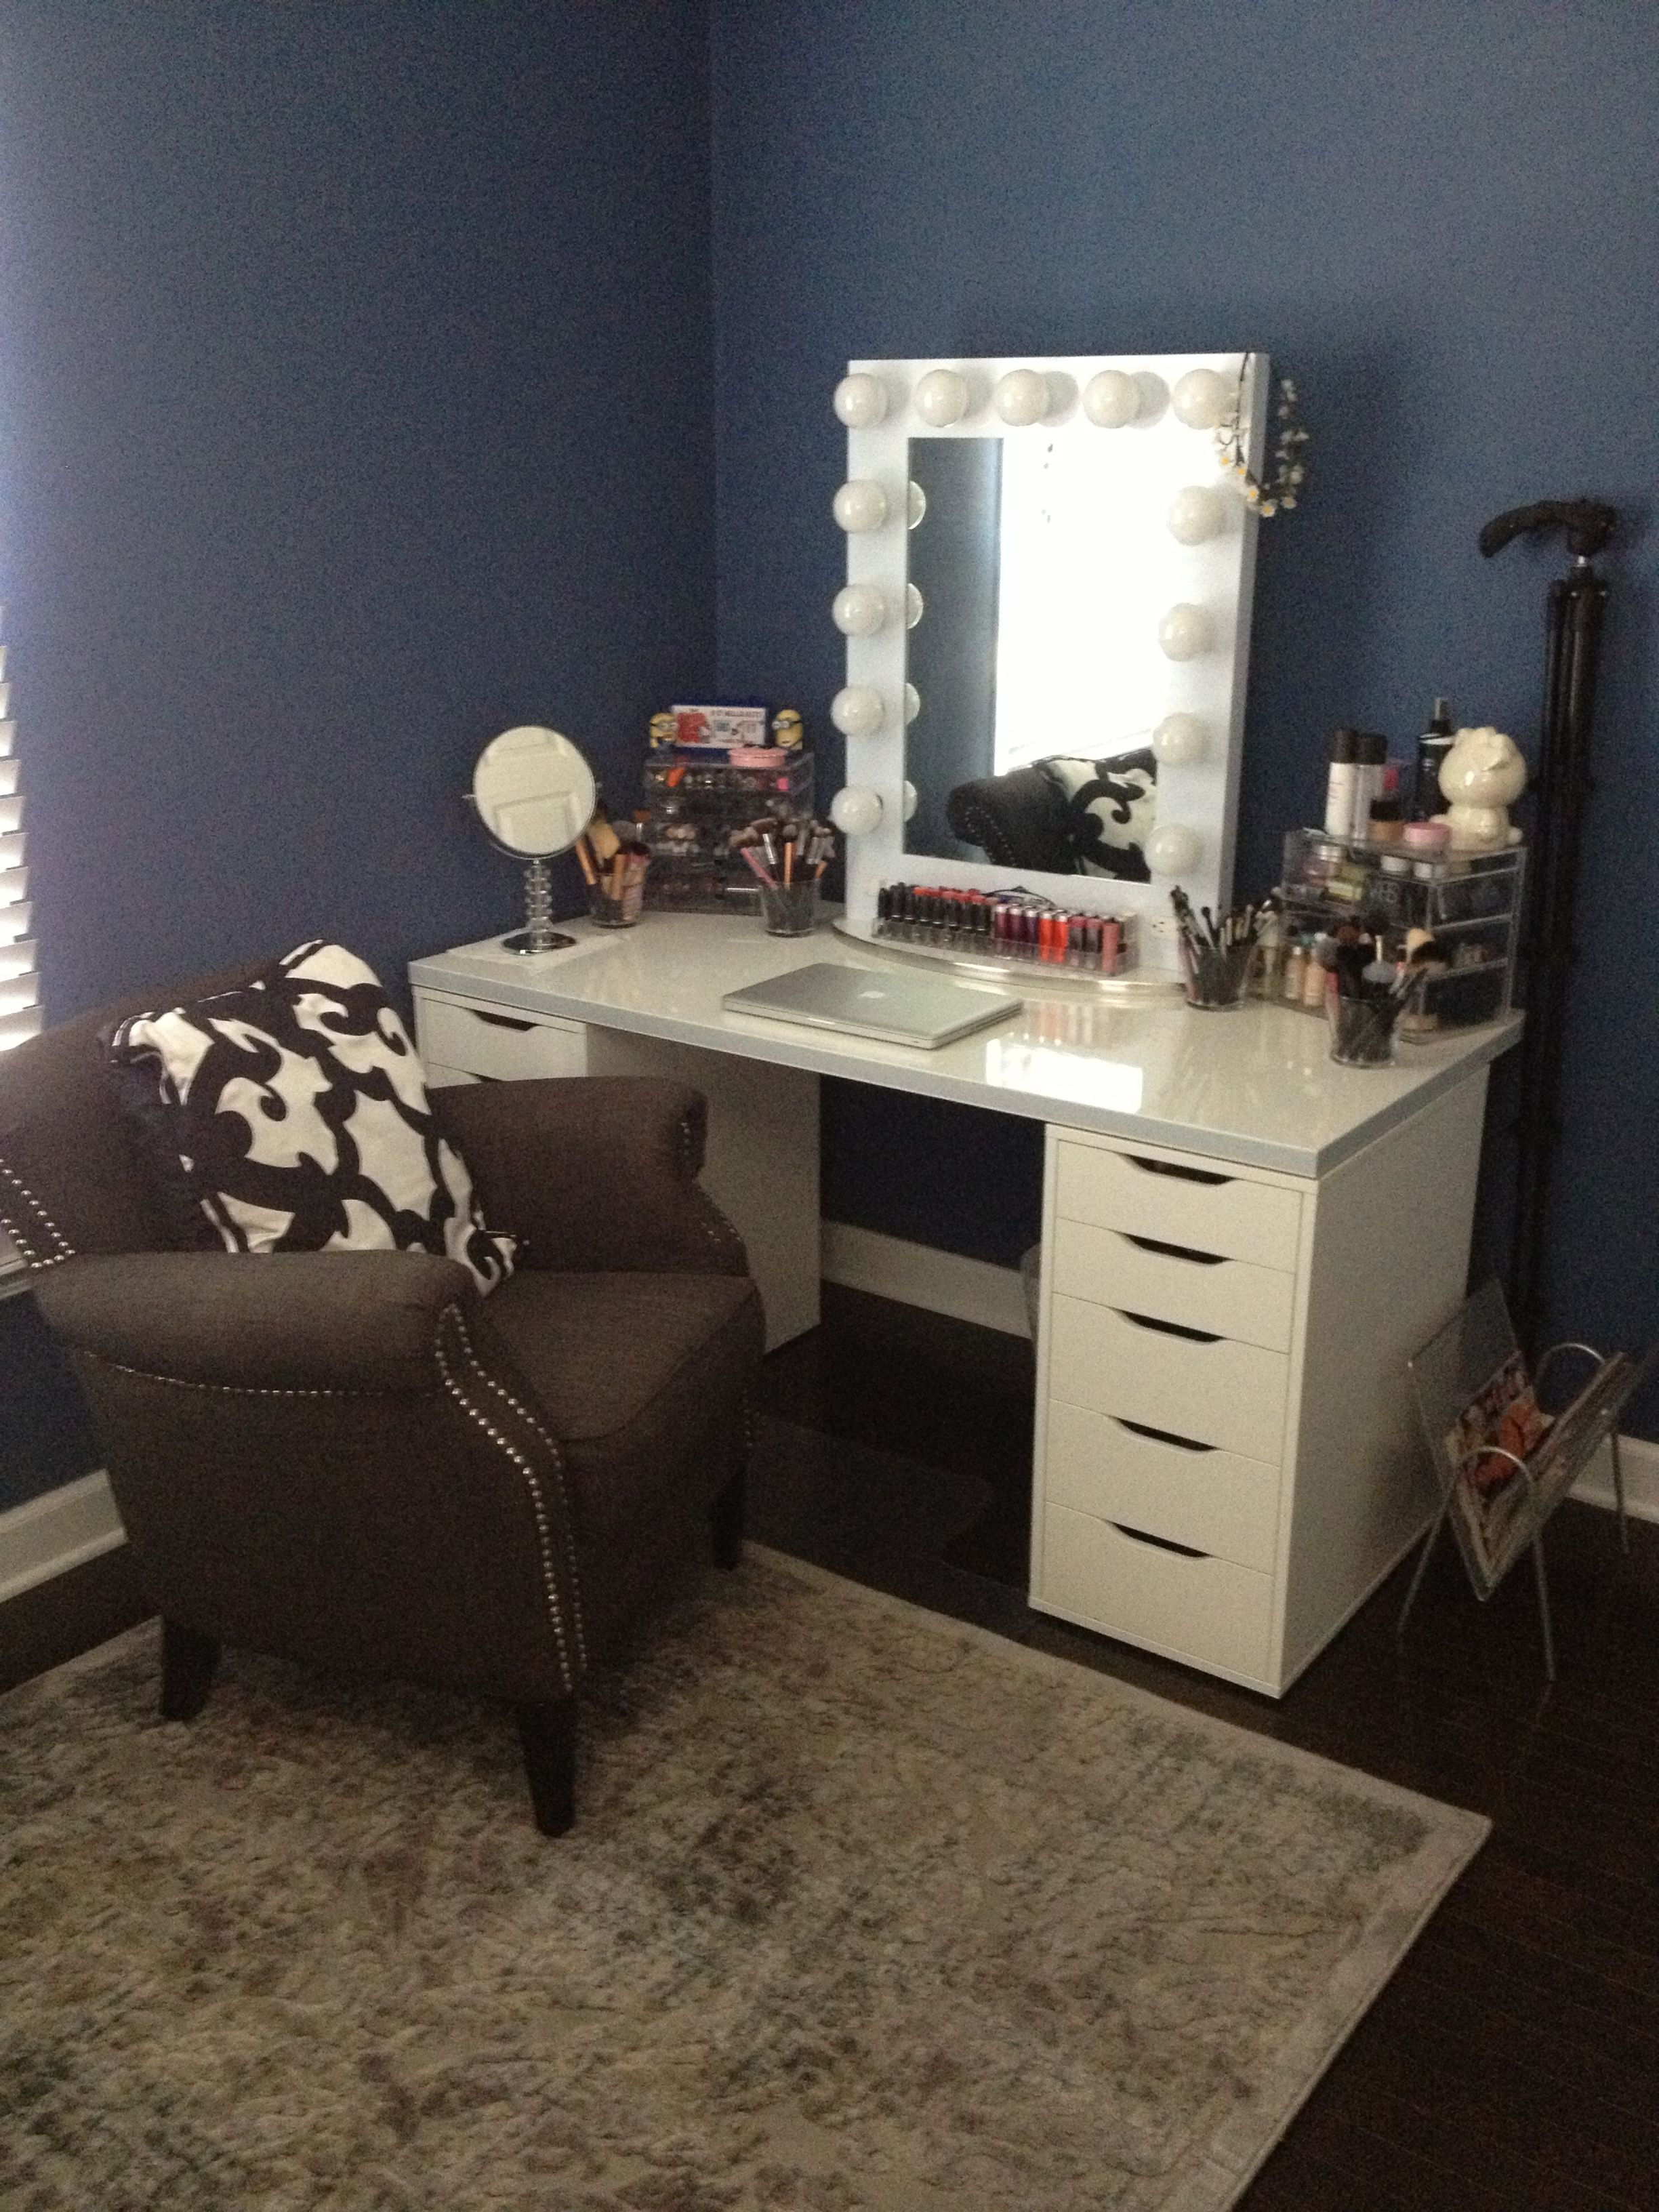 make your own vanity drawers ikea alex table top ikea linnmon mirror vanity girl hollywood follow me on instagram youtube for other makeup and beauty